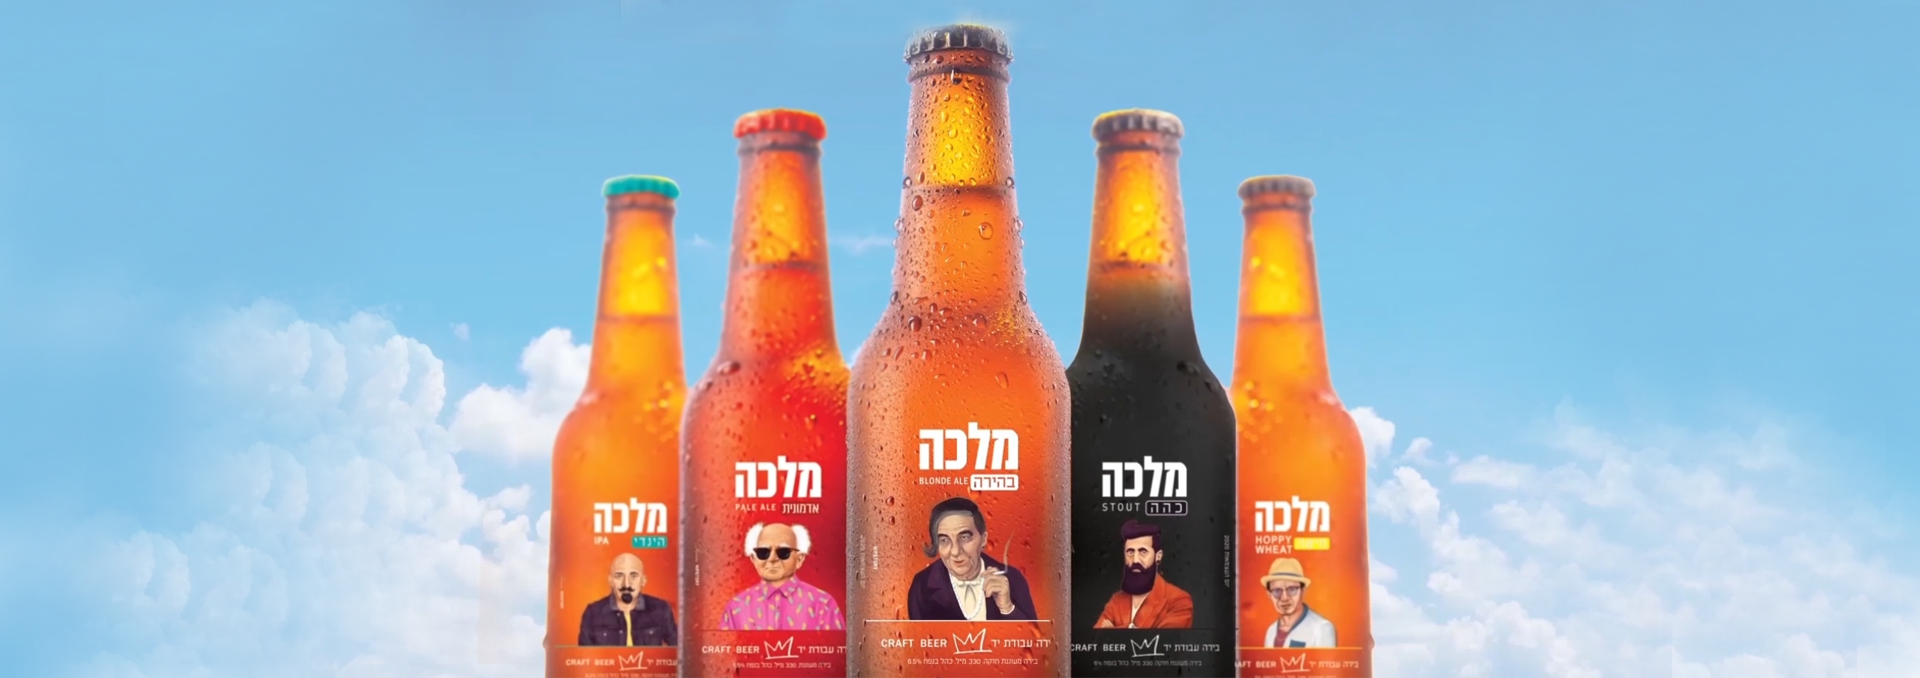 Celebrating Israel's 72nd year of independence with Malka Beer.